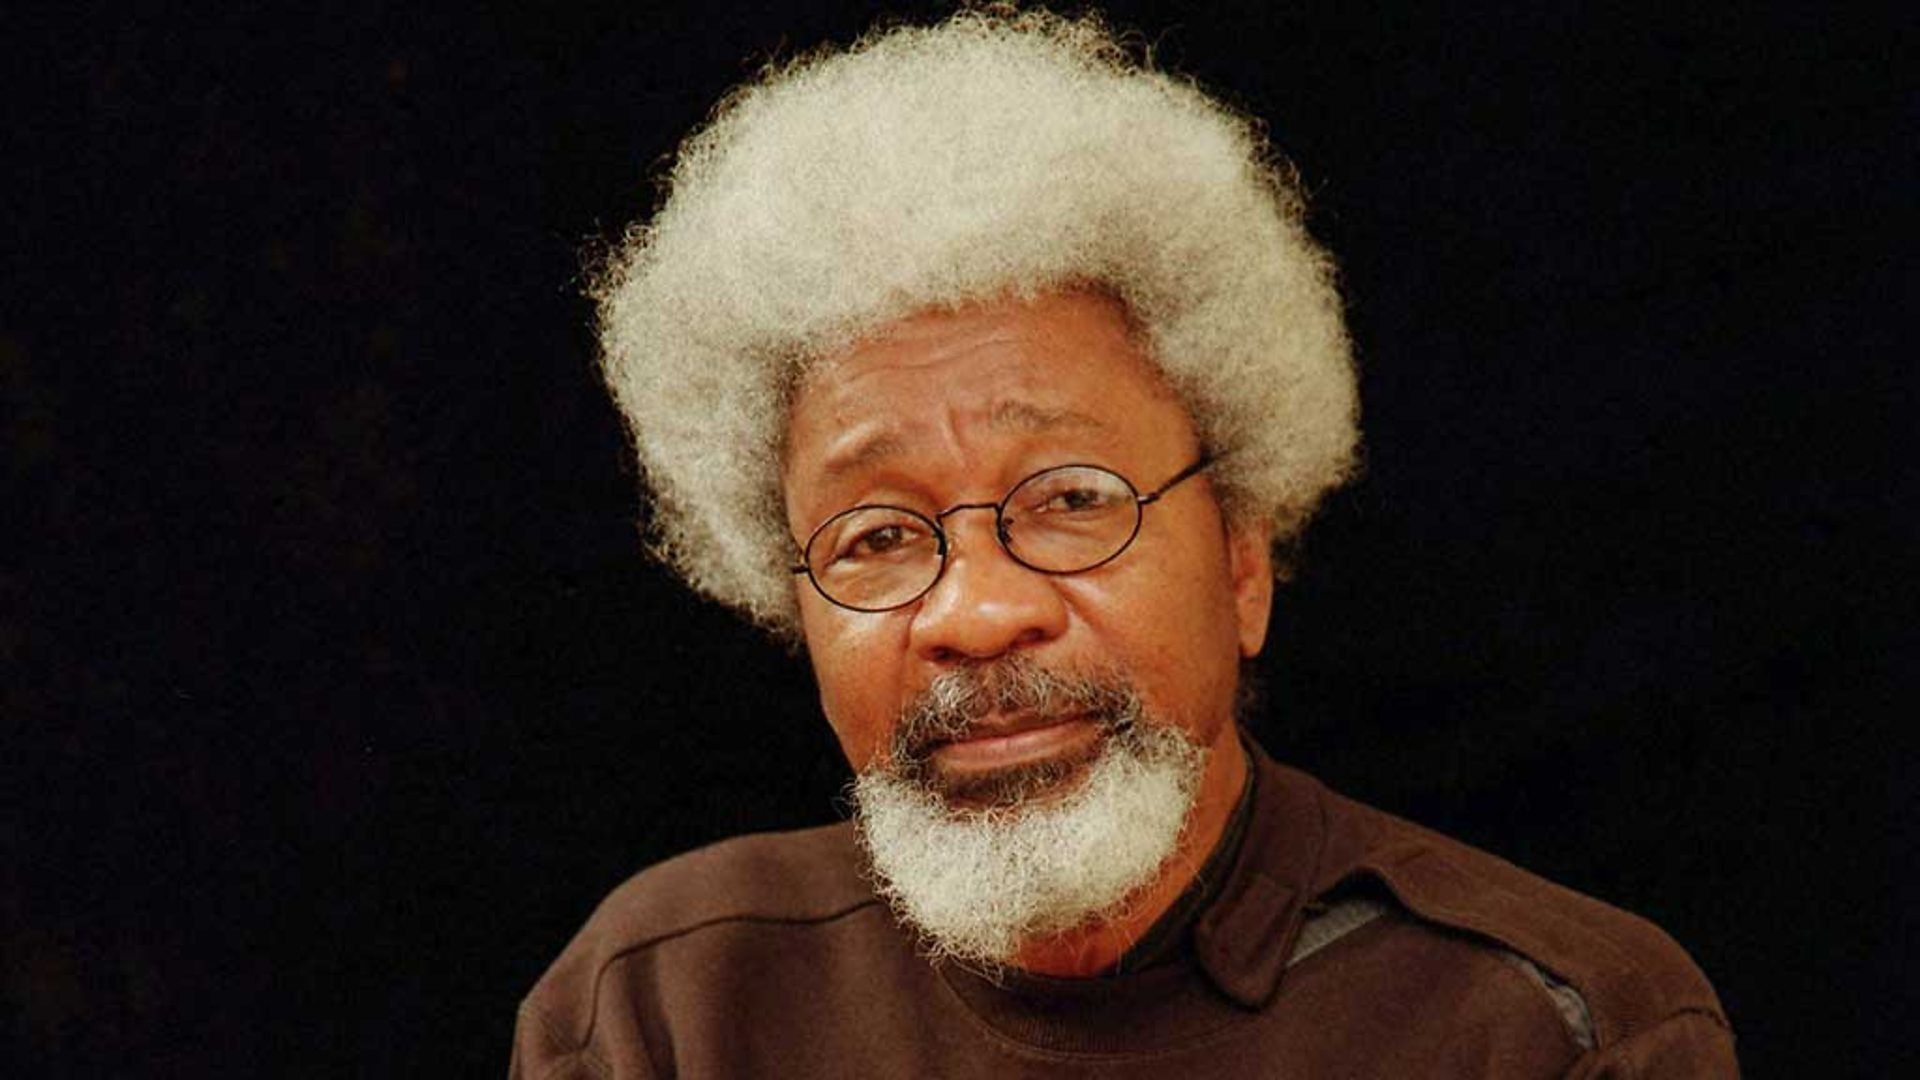 Amotekun is a fulfillment of  the yearnings of the people: Soyinka